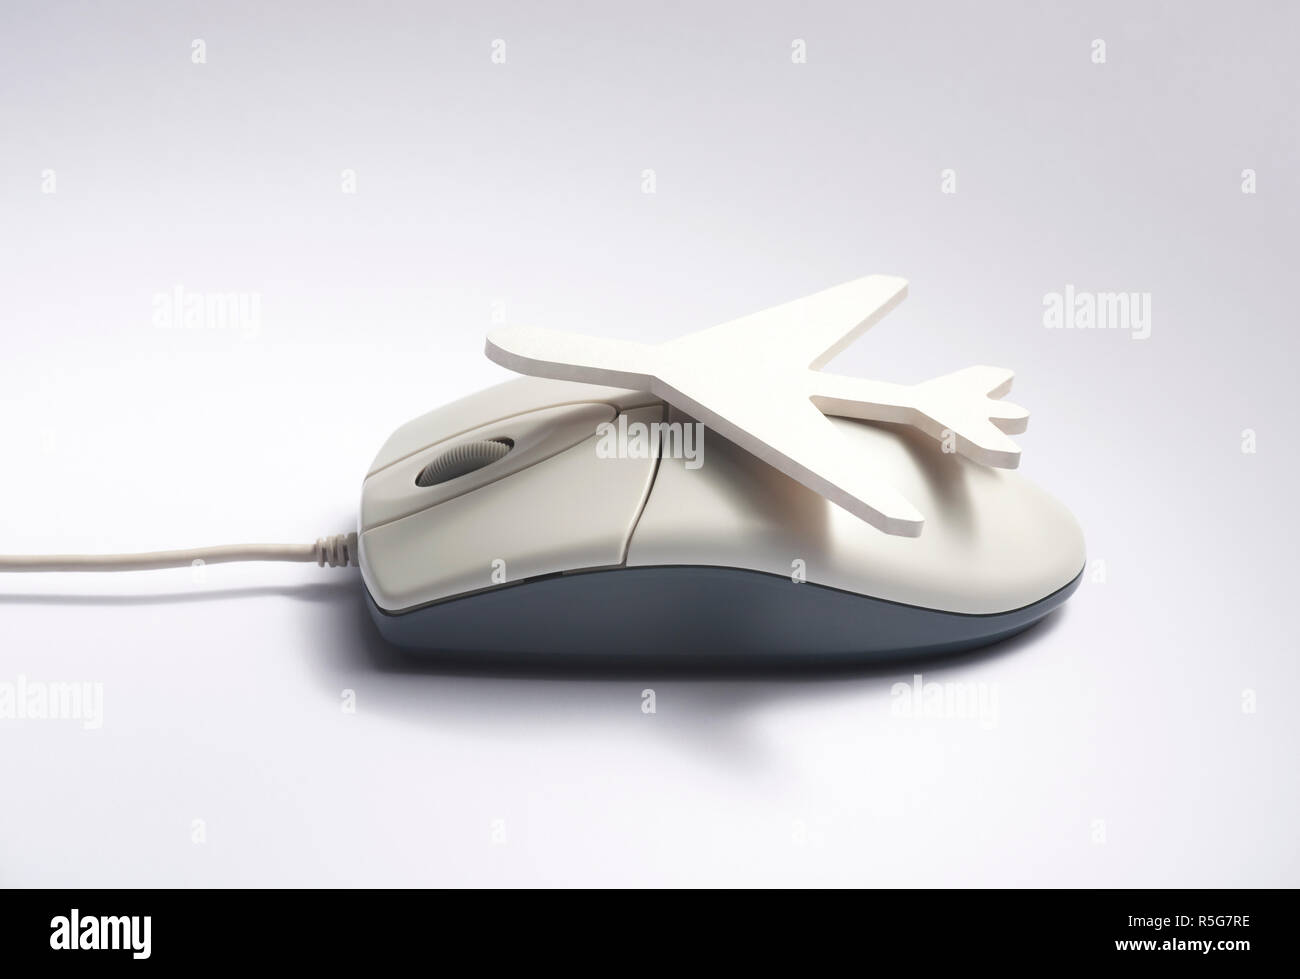 Online travel booking concept. Airplane shape on computer mouse - Stock Image